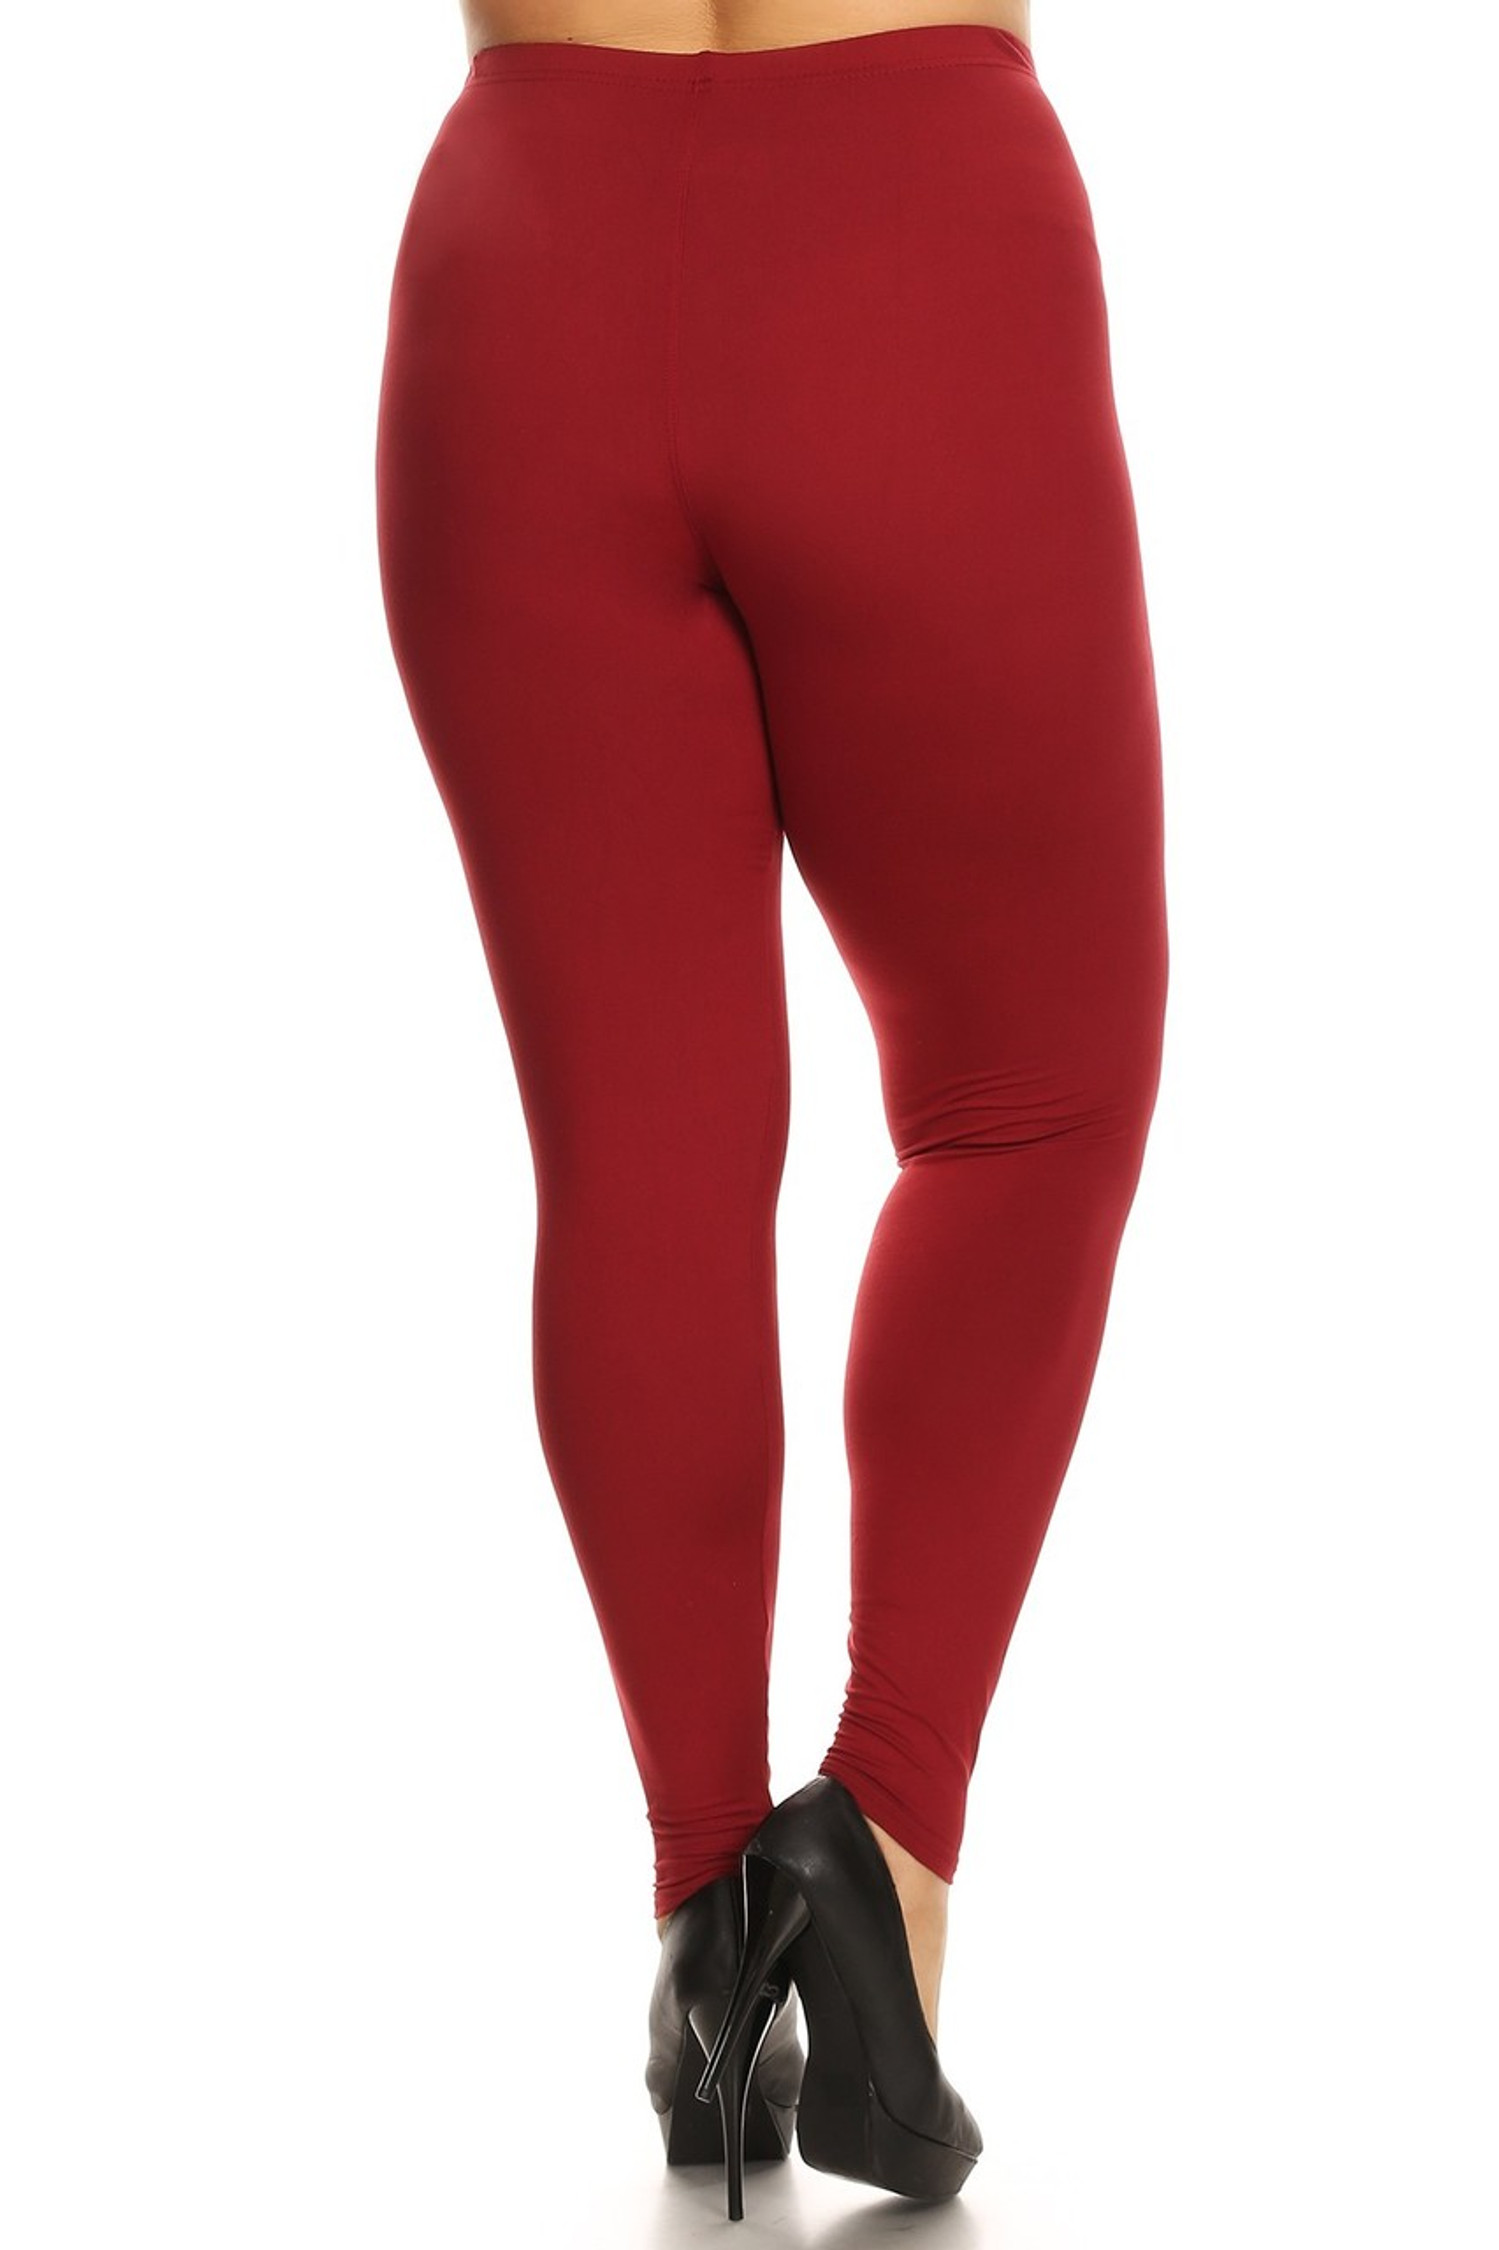 BrushedBasic Solid Leggings Plus Size - 3X-5X